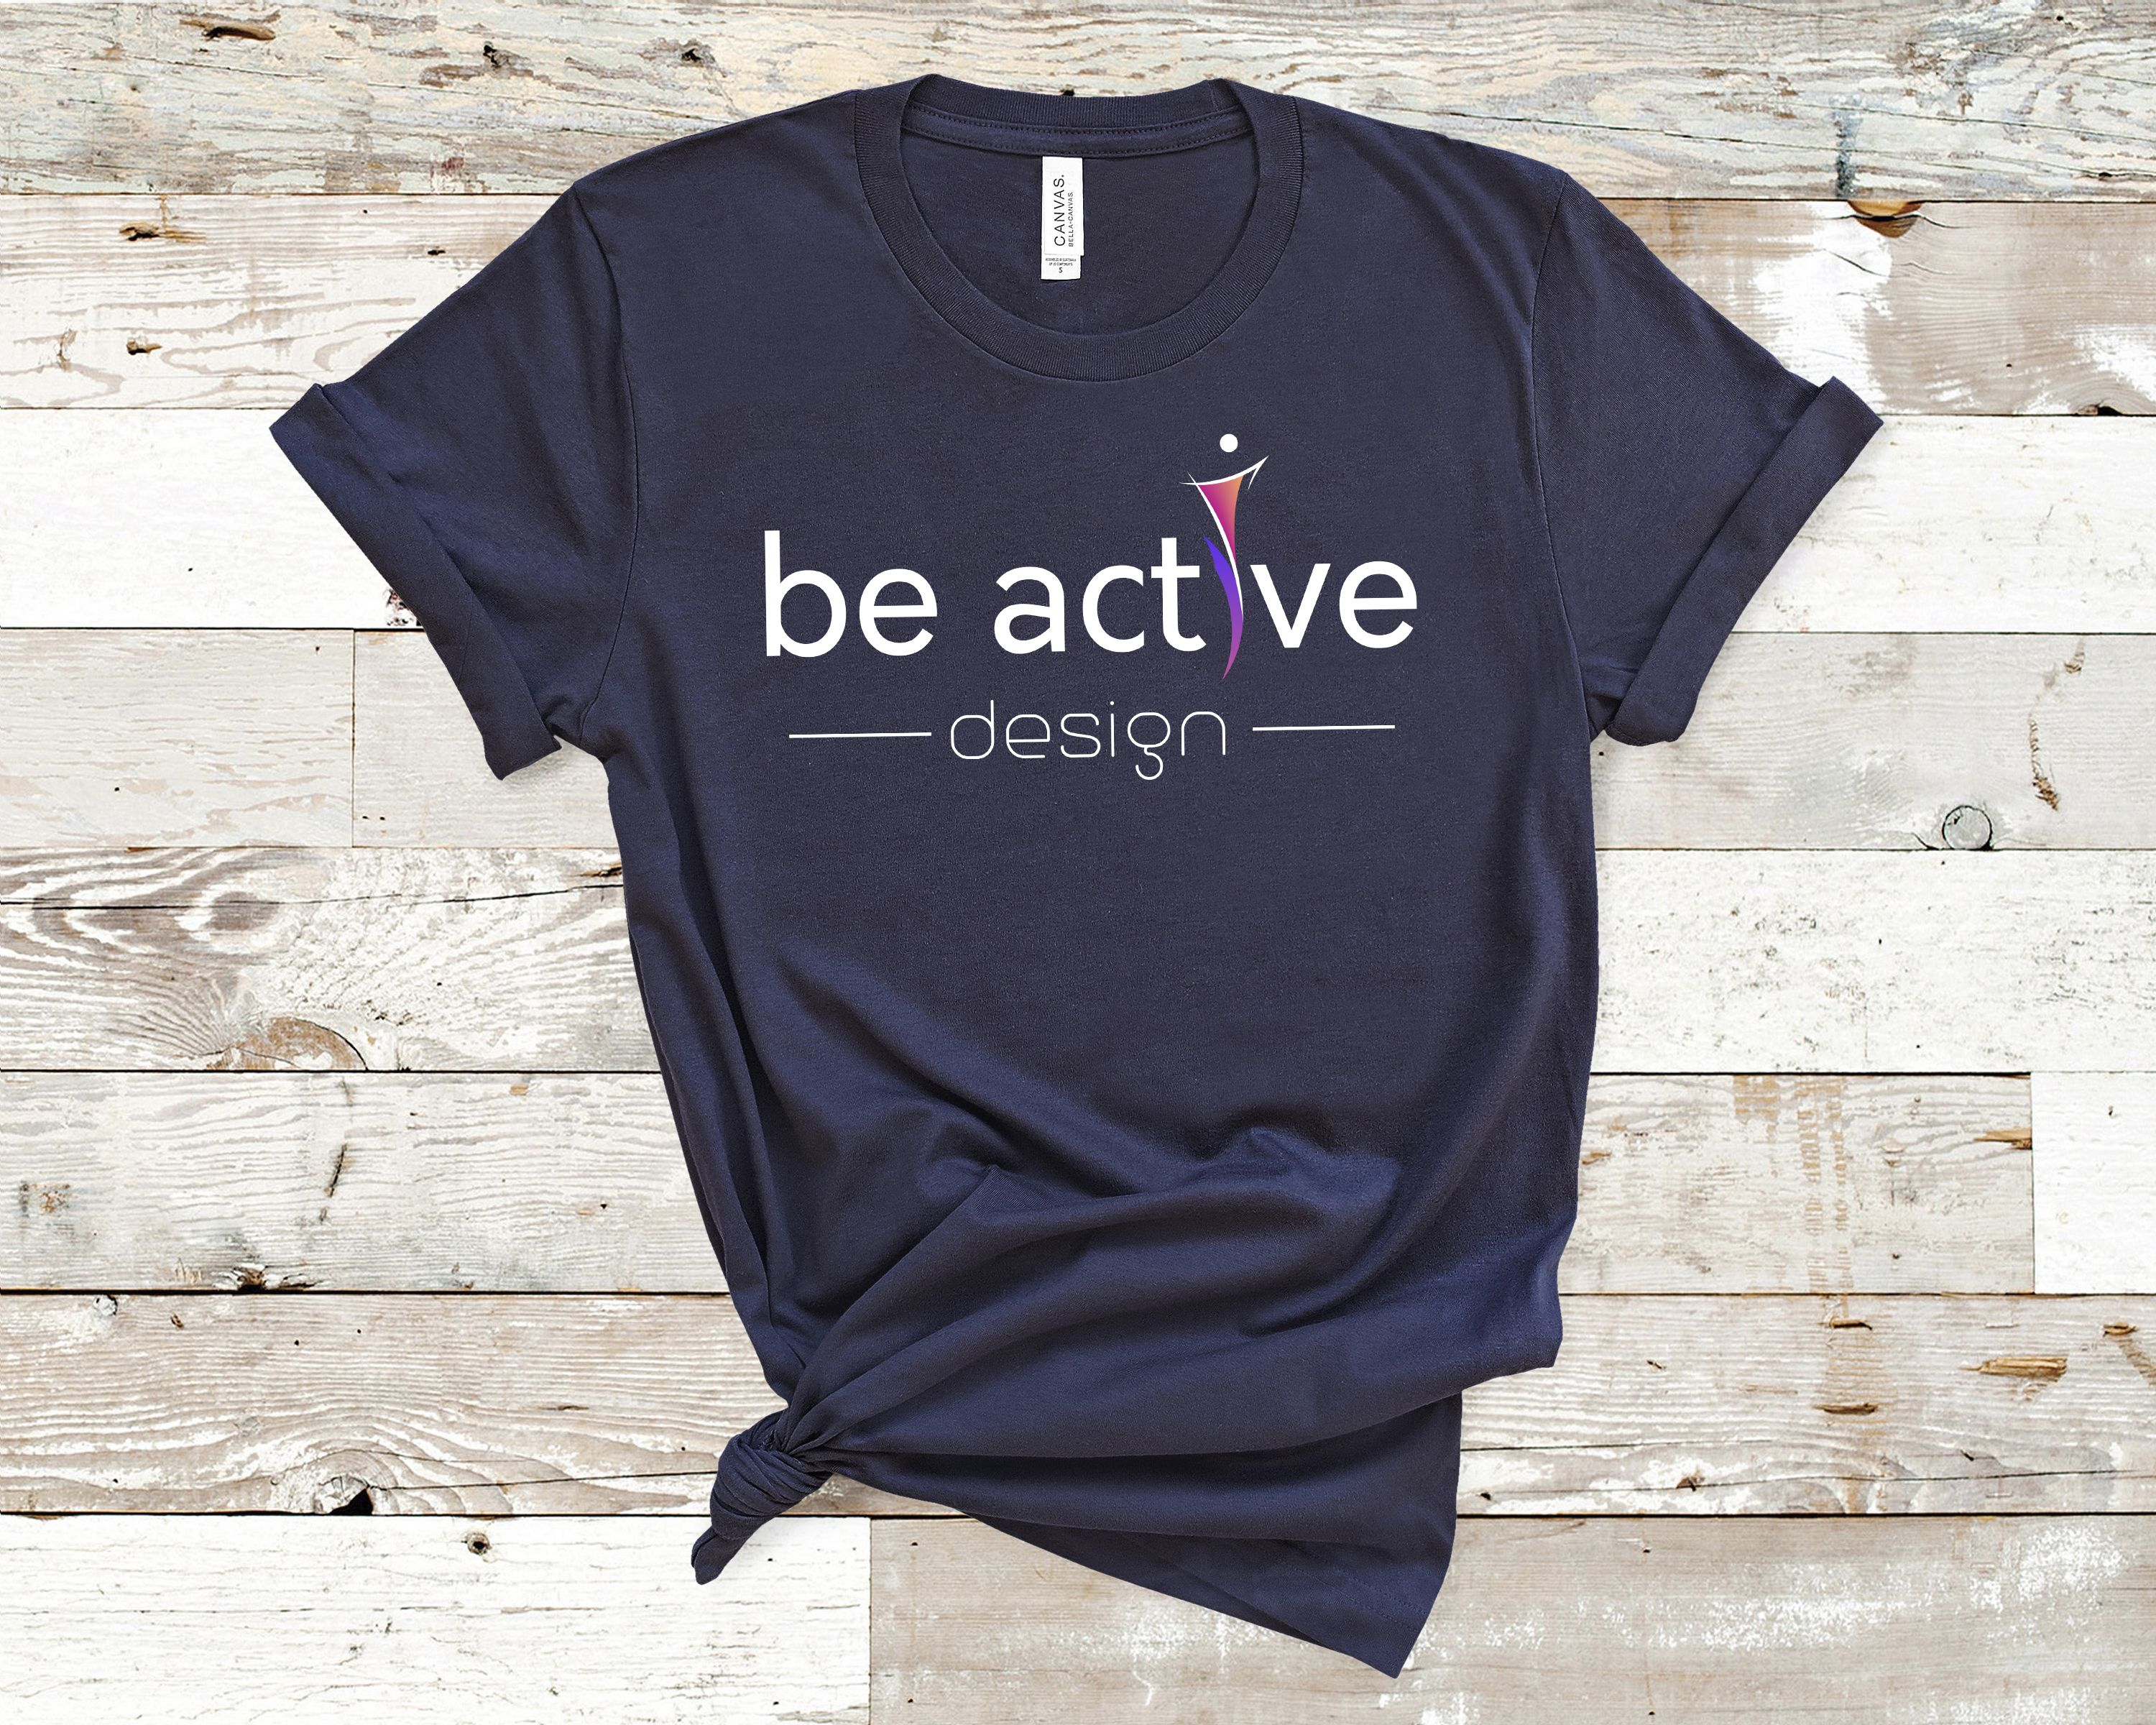 Be active design workout shirt sport tee funny gym tshirt